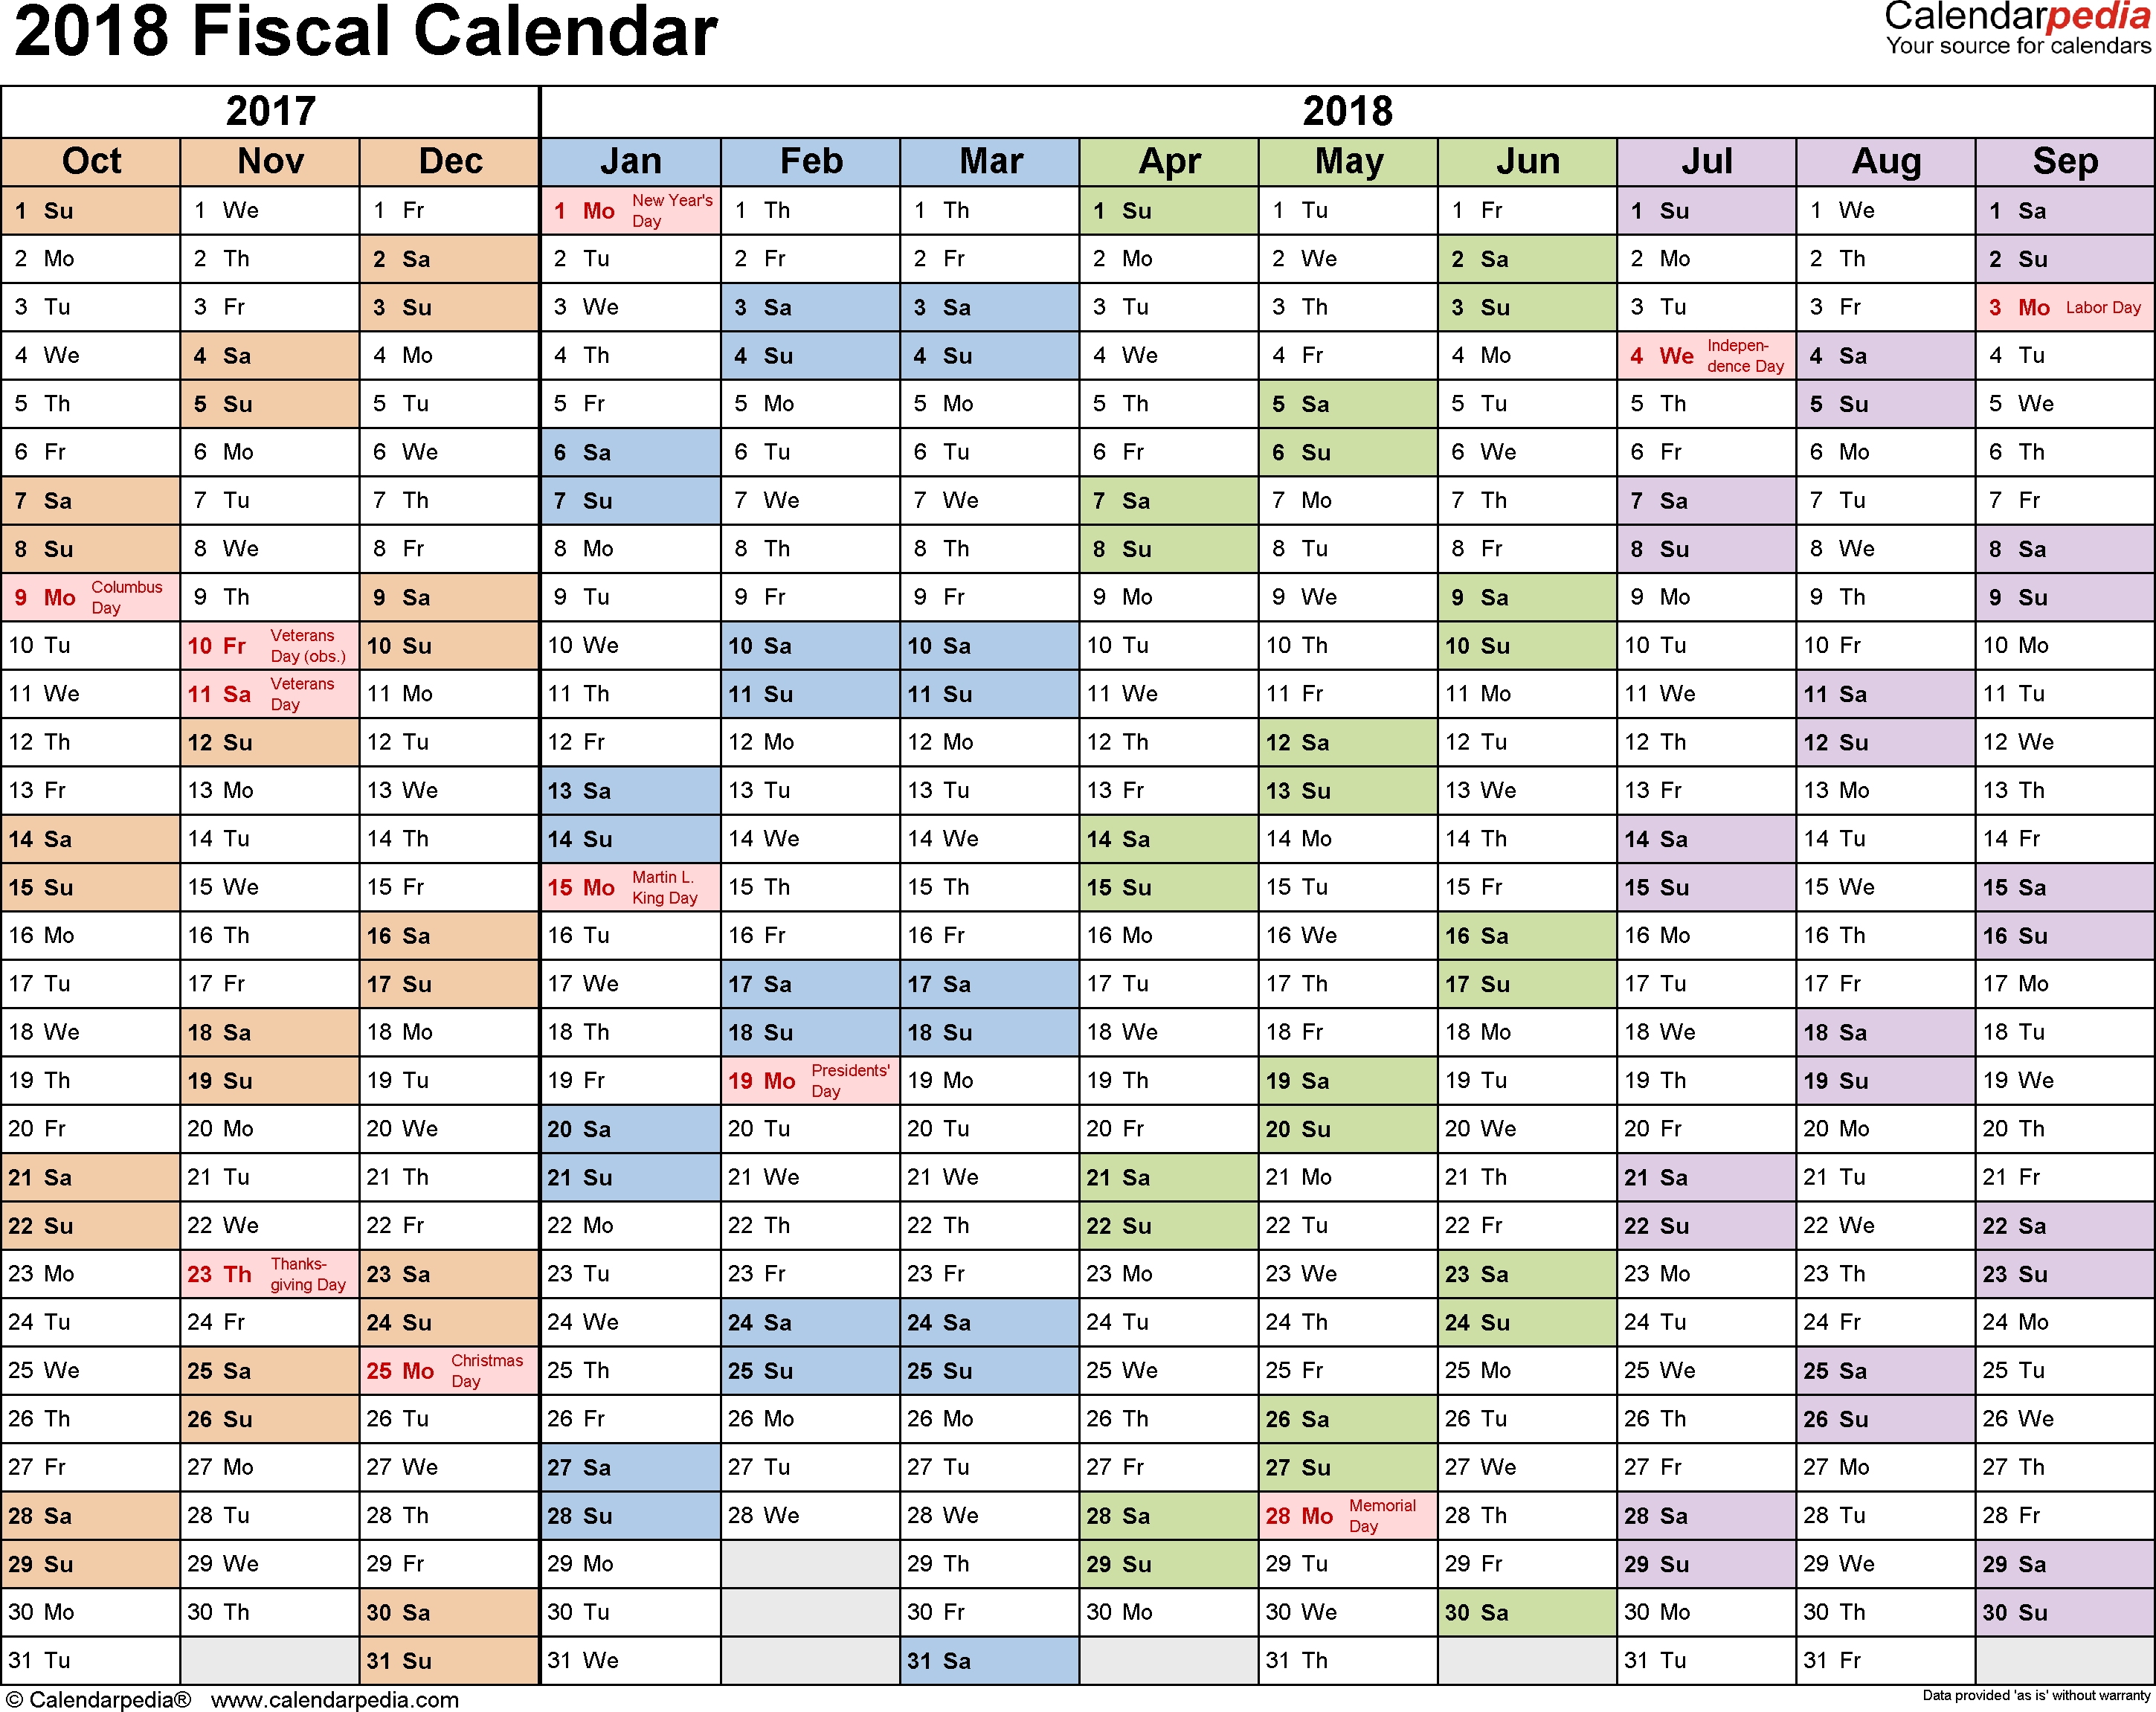 Fiscal Calendars 2018 - Free Printable Pdf Templates